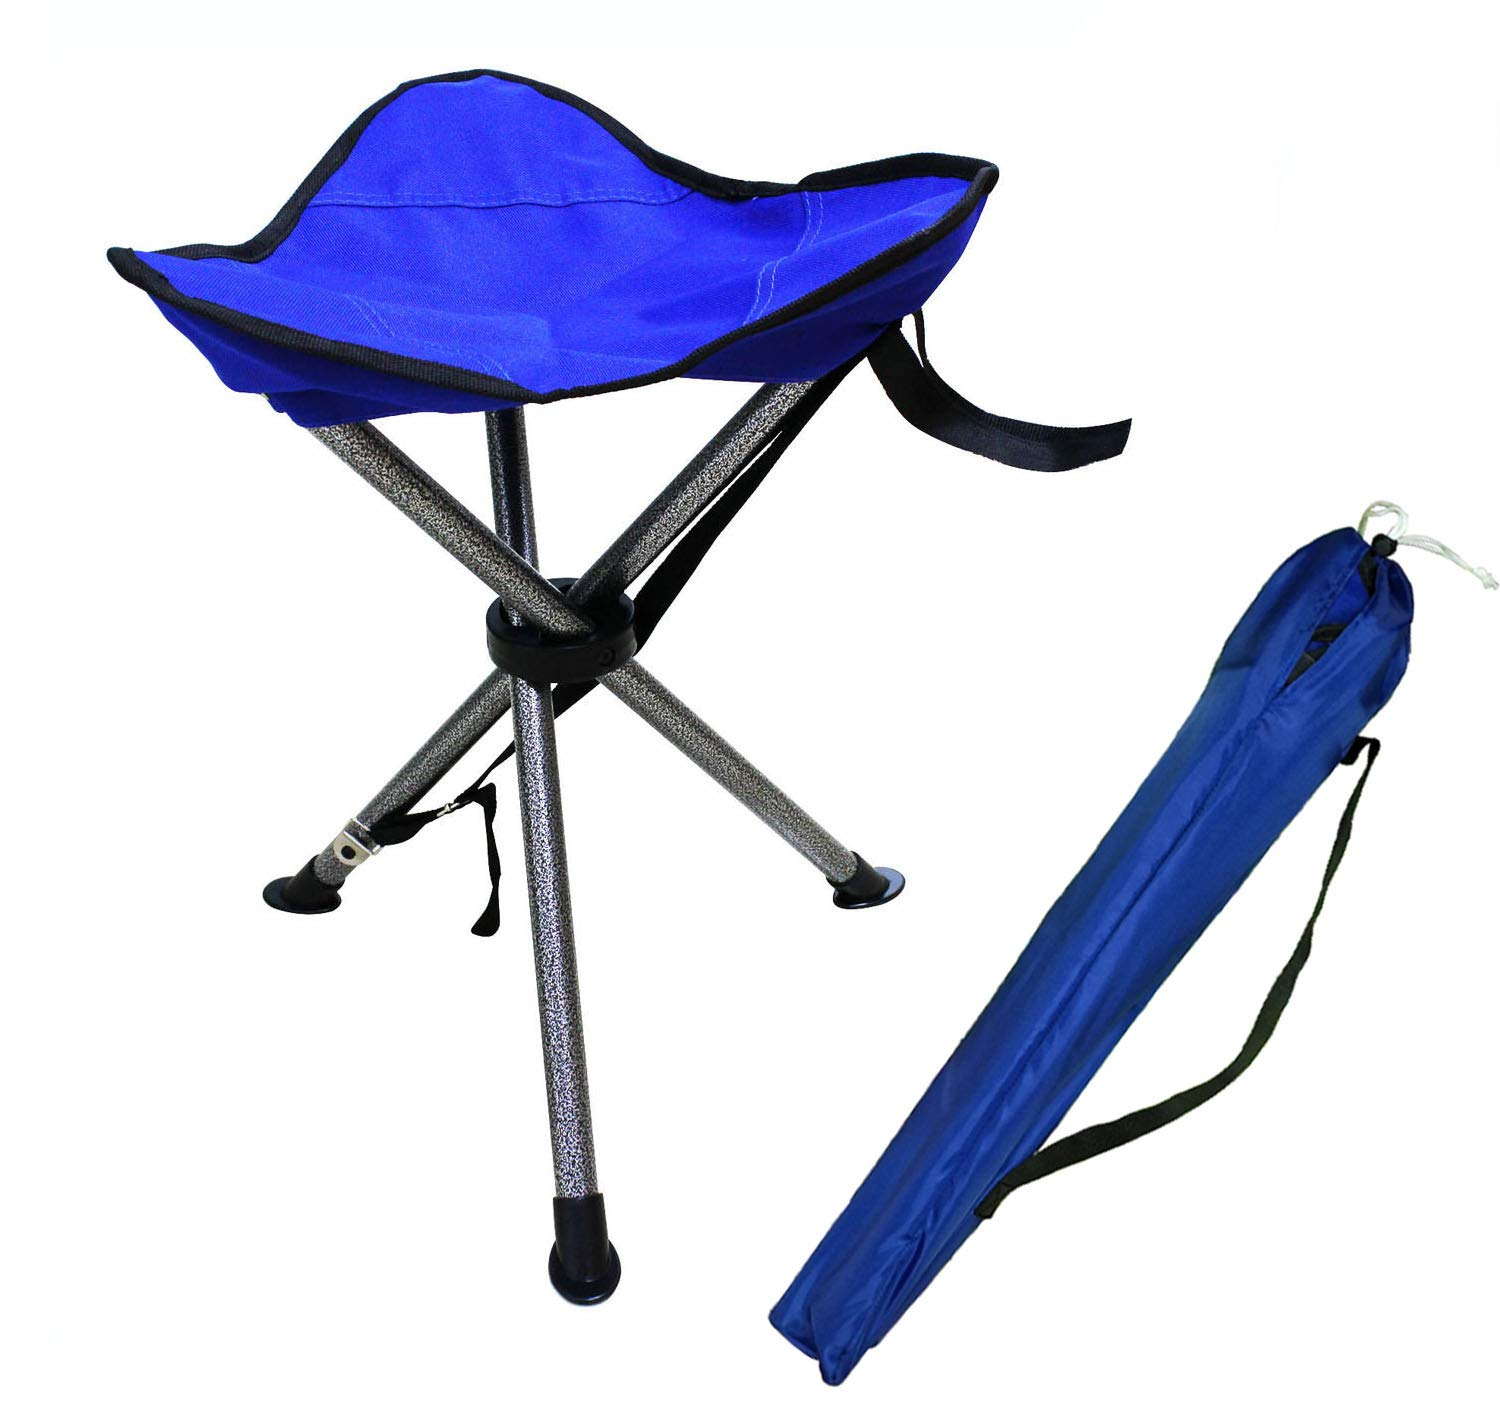 JSHANMEI Portable Tripod Stool Folding Chair with Carrying Case for Outdoor Camping Walking Hunting Hiking Fishing Travel, 270 lbs. Capacity